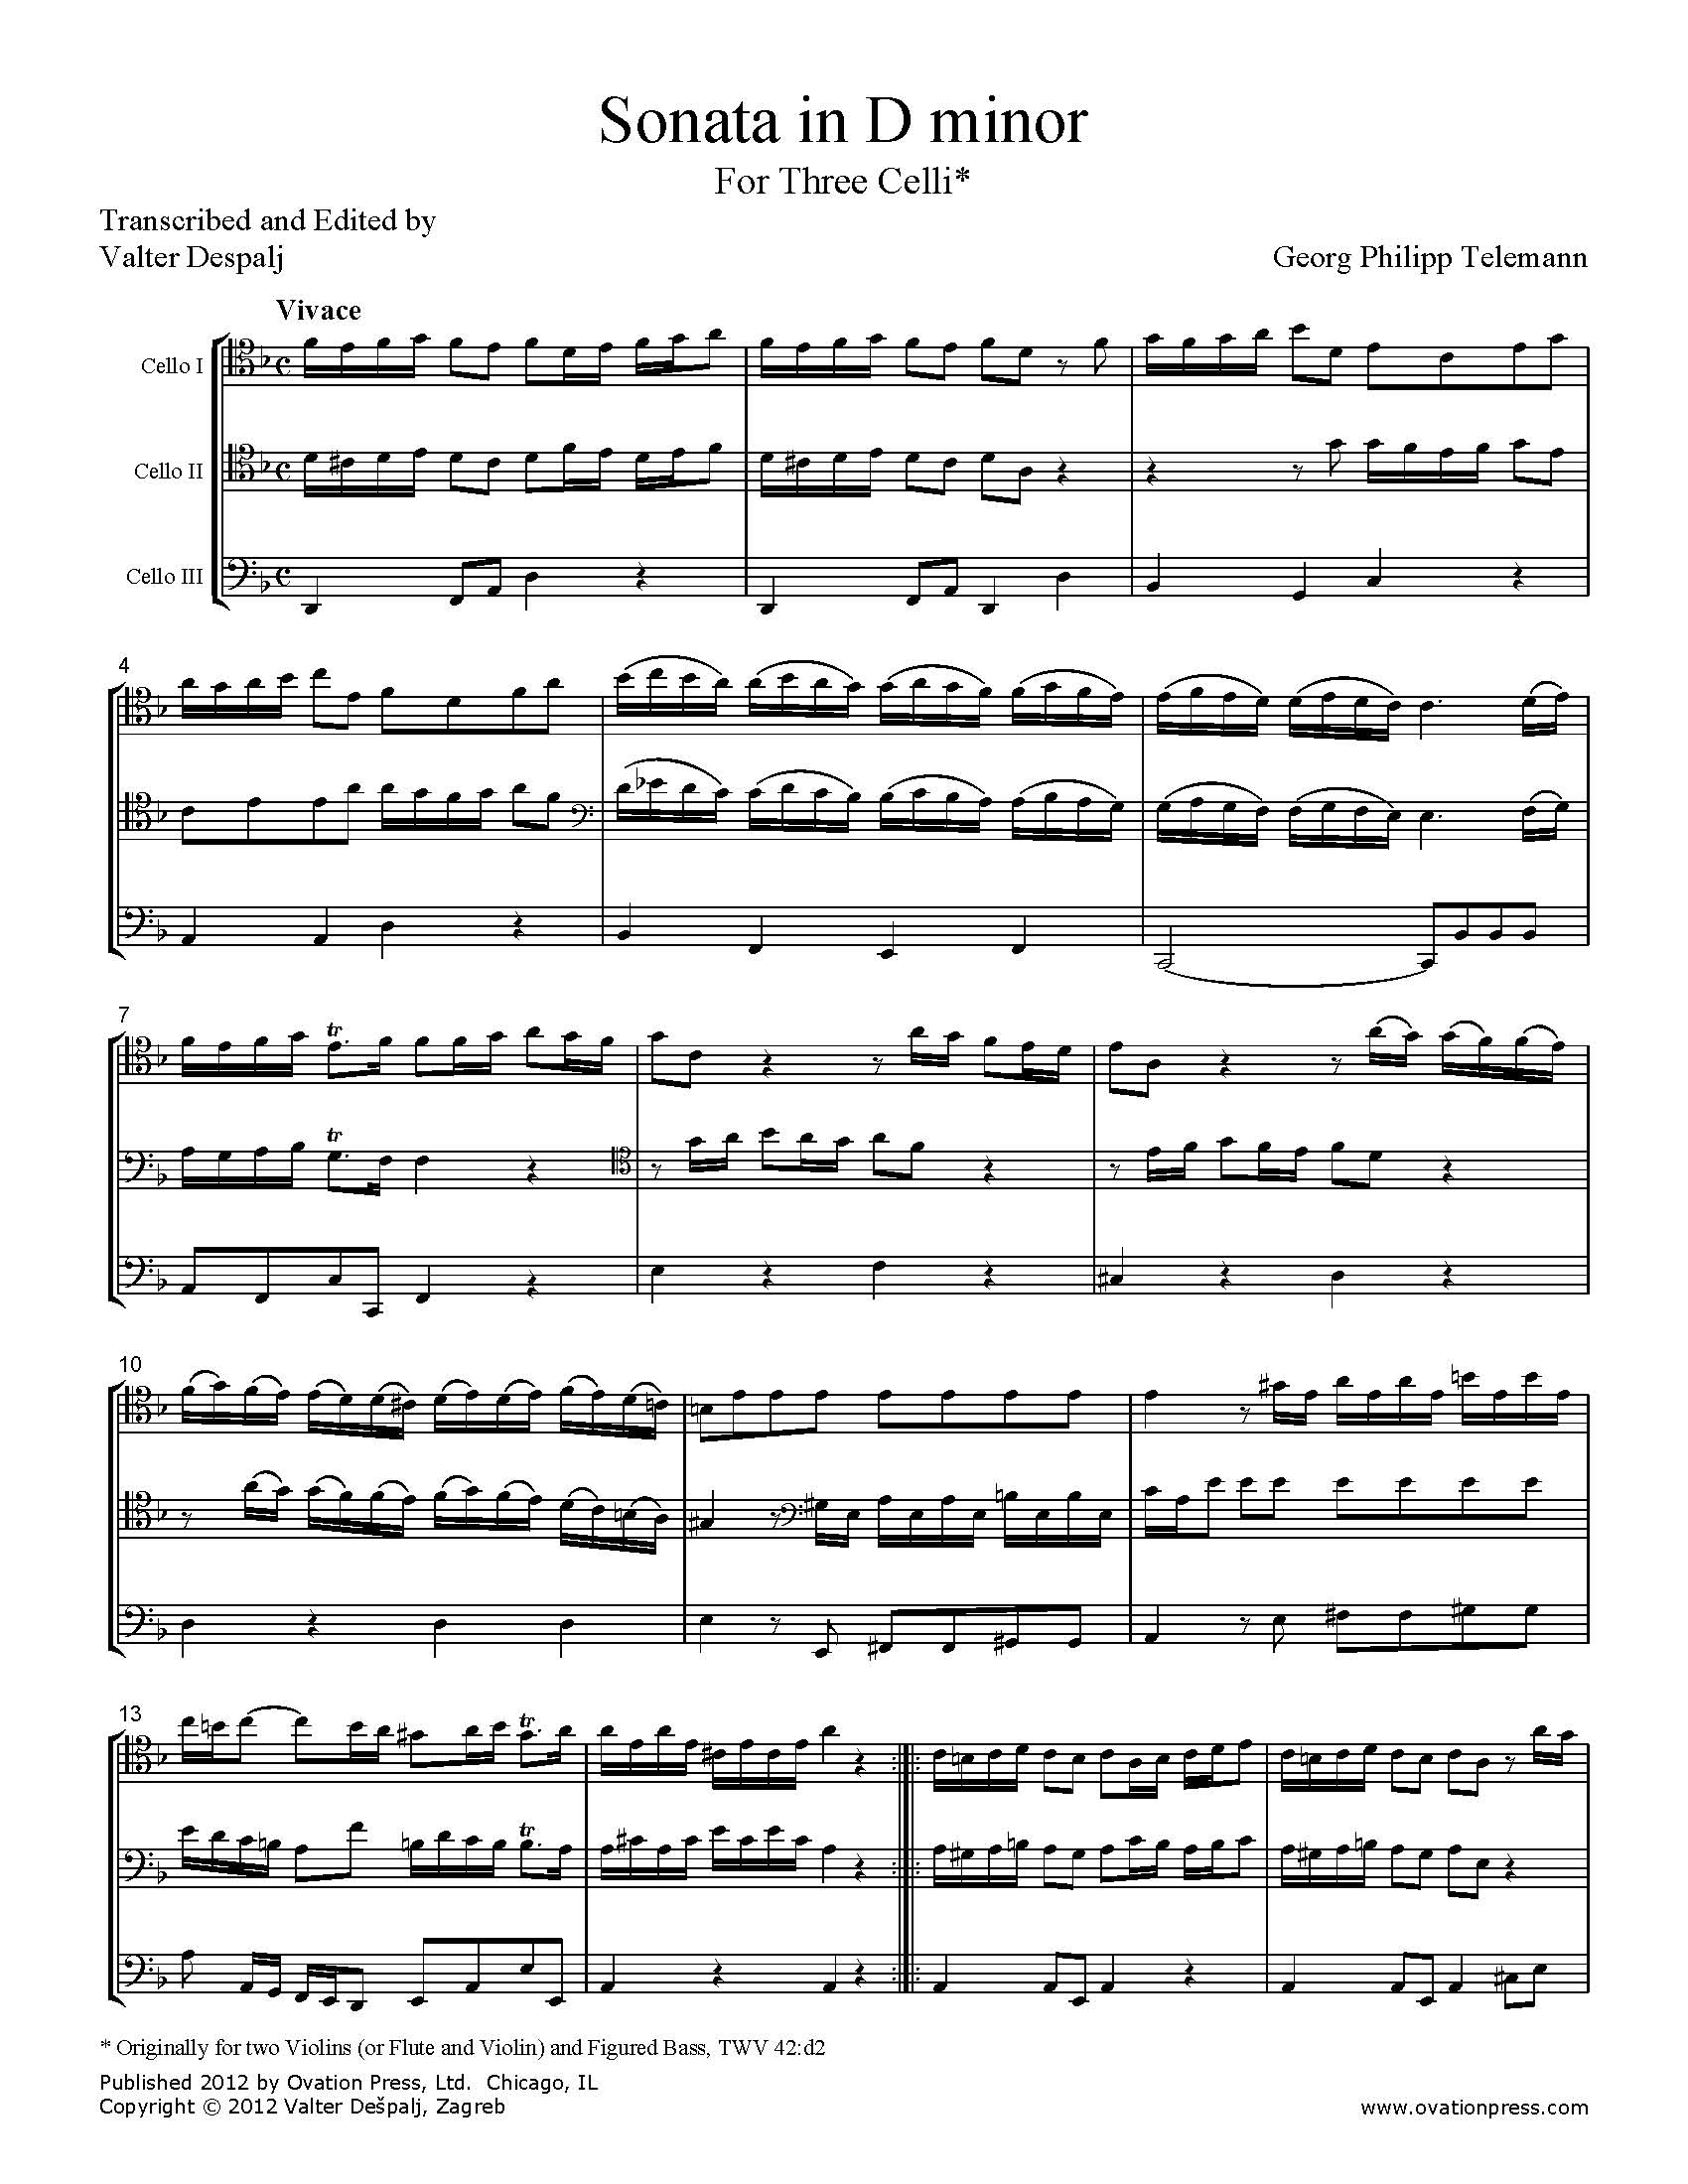 Telemann Sonata in D minor Arranged for Cello Trio